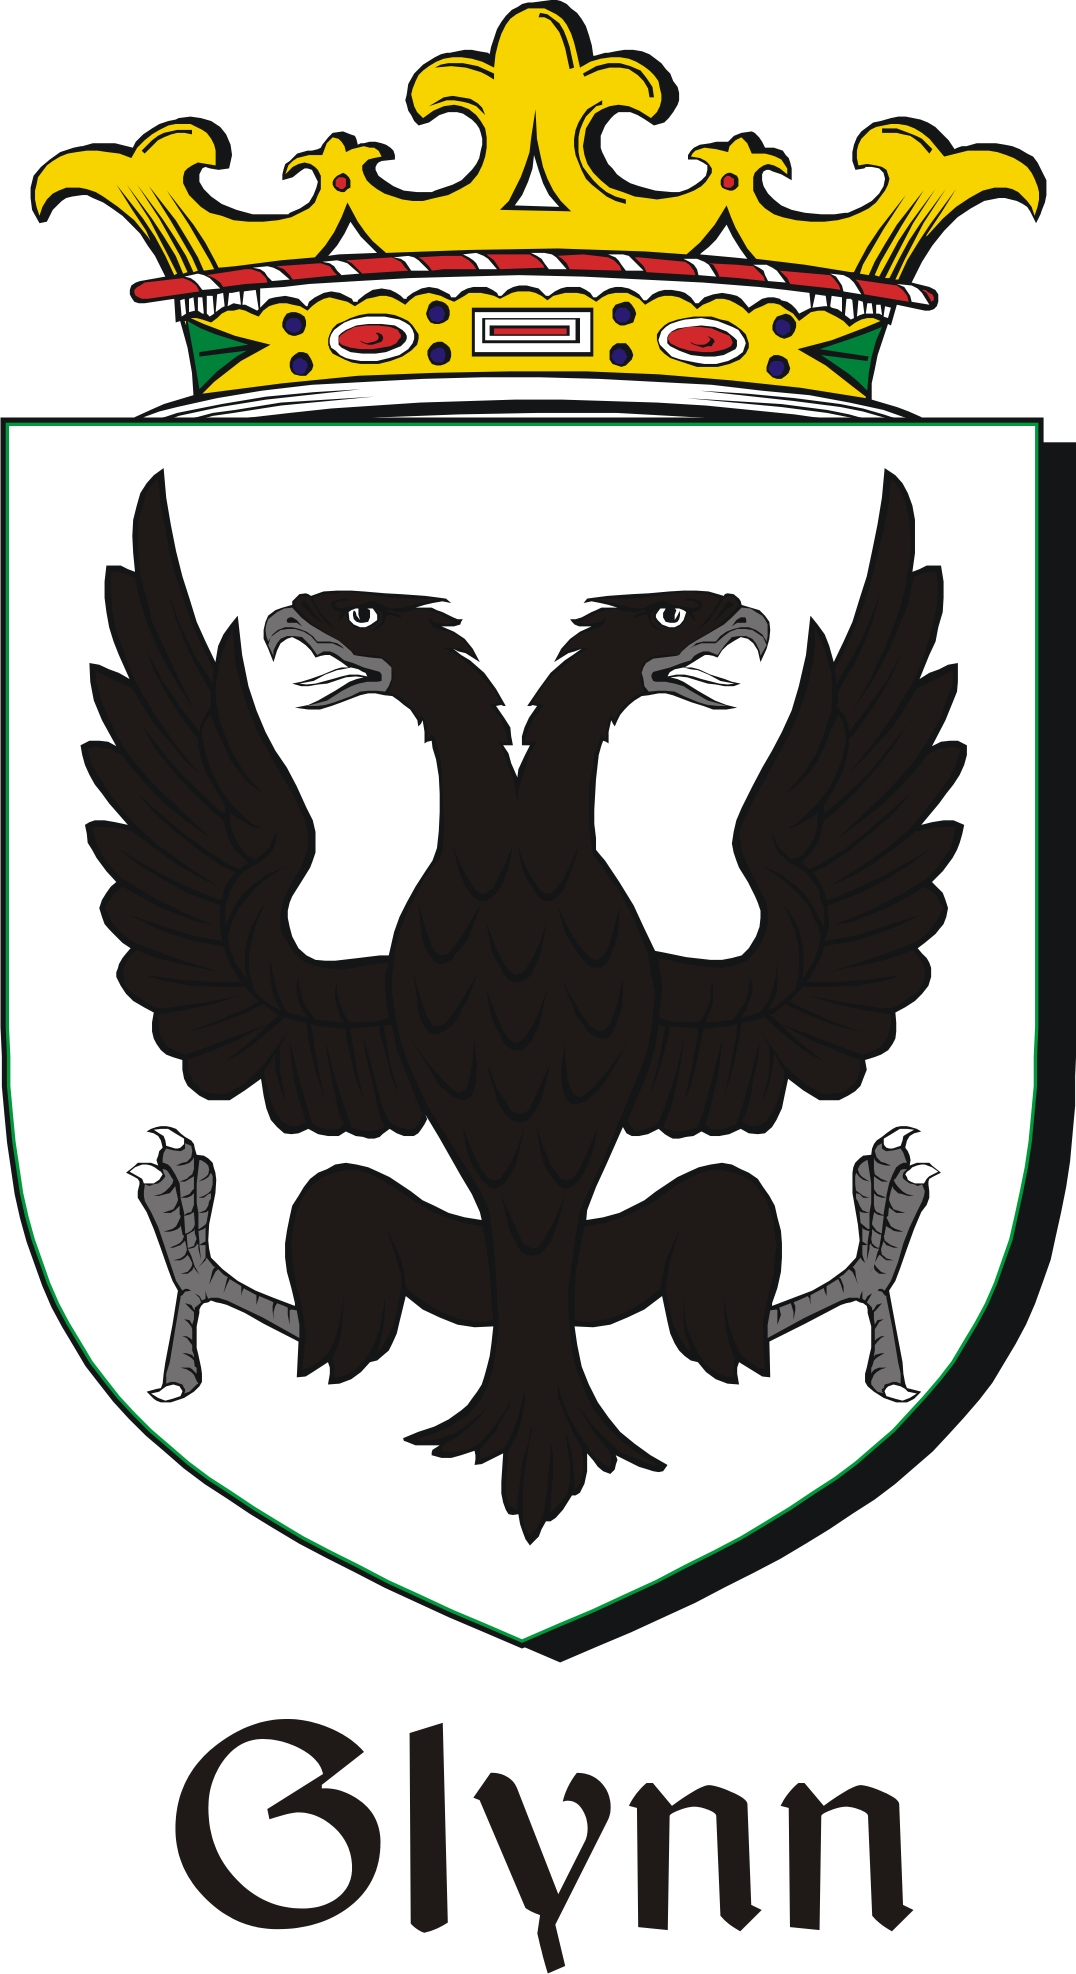 glynn family crest    irish coat of arms image download